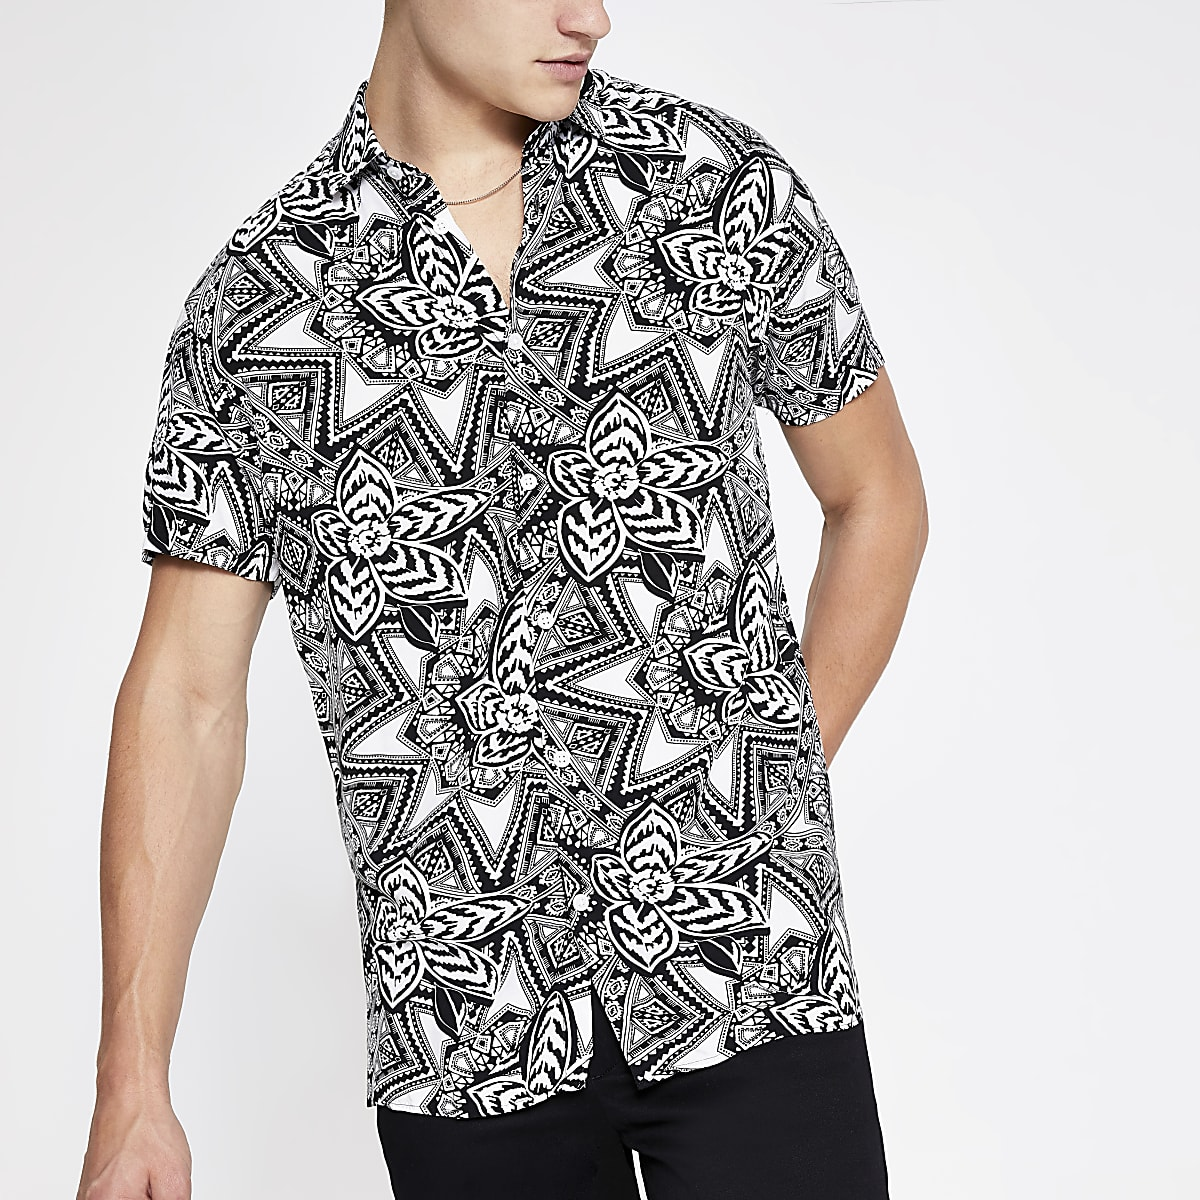 Selected Homme white printed shirt